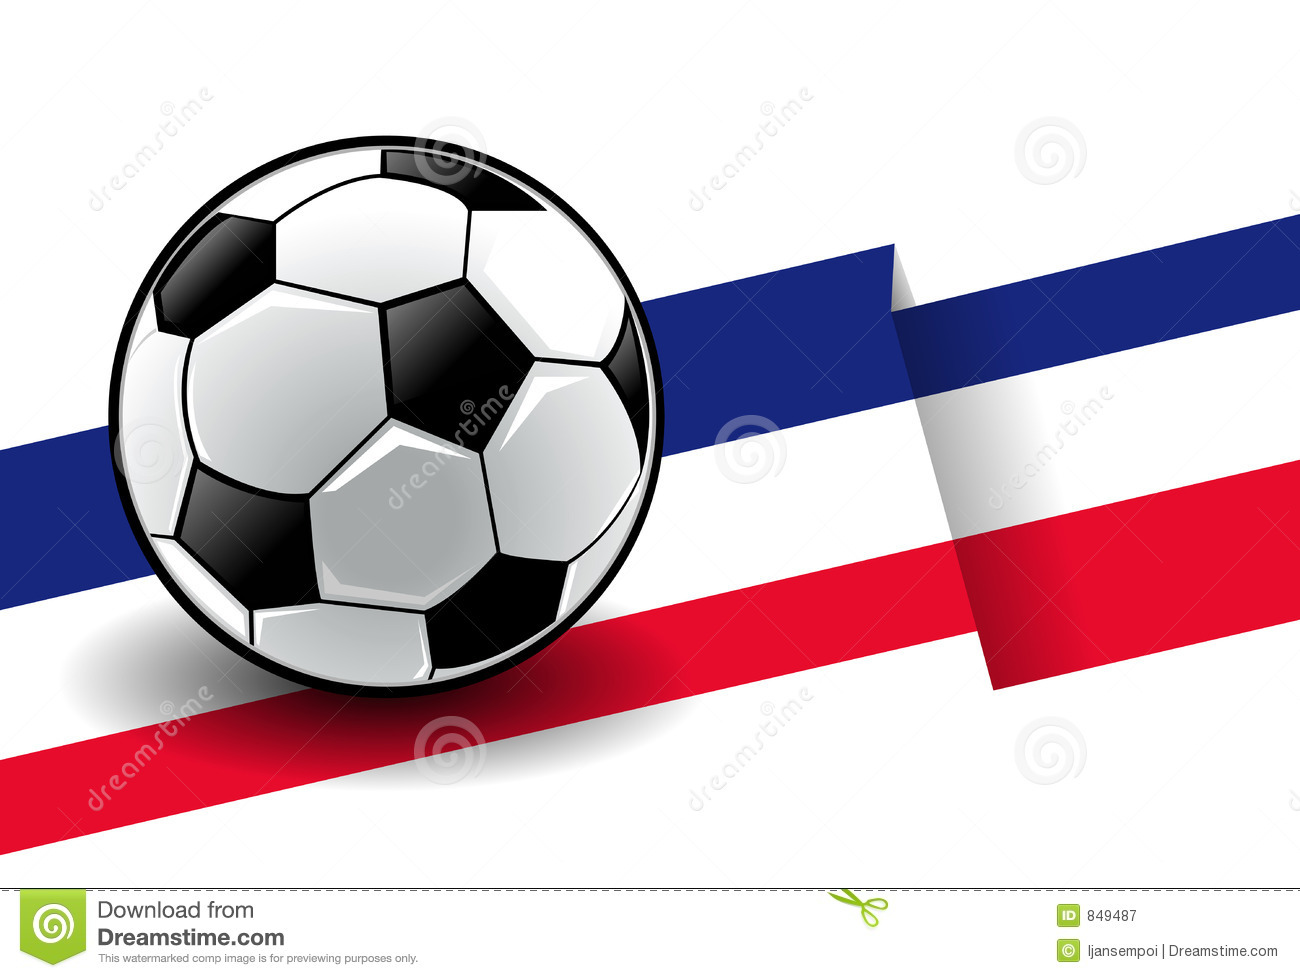 Football with flag - France